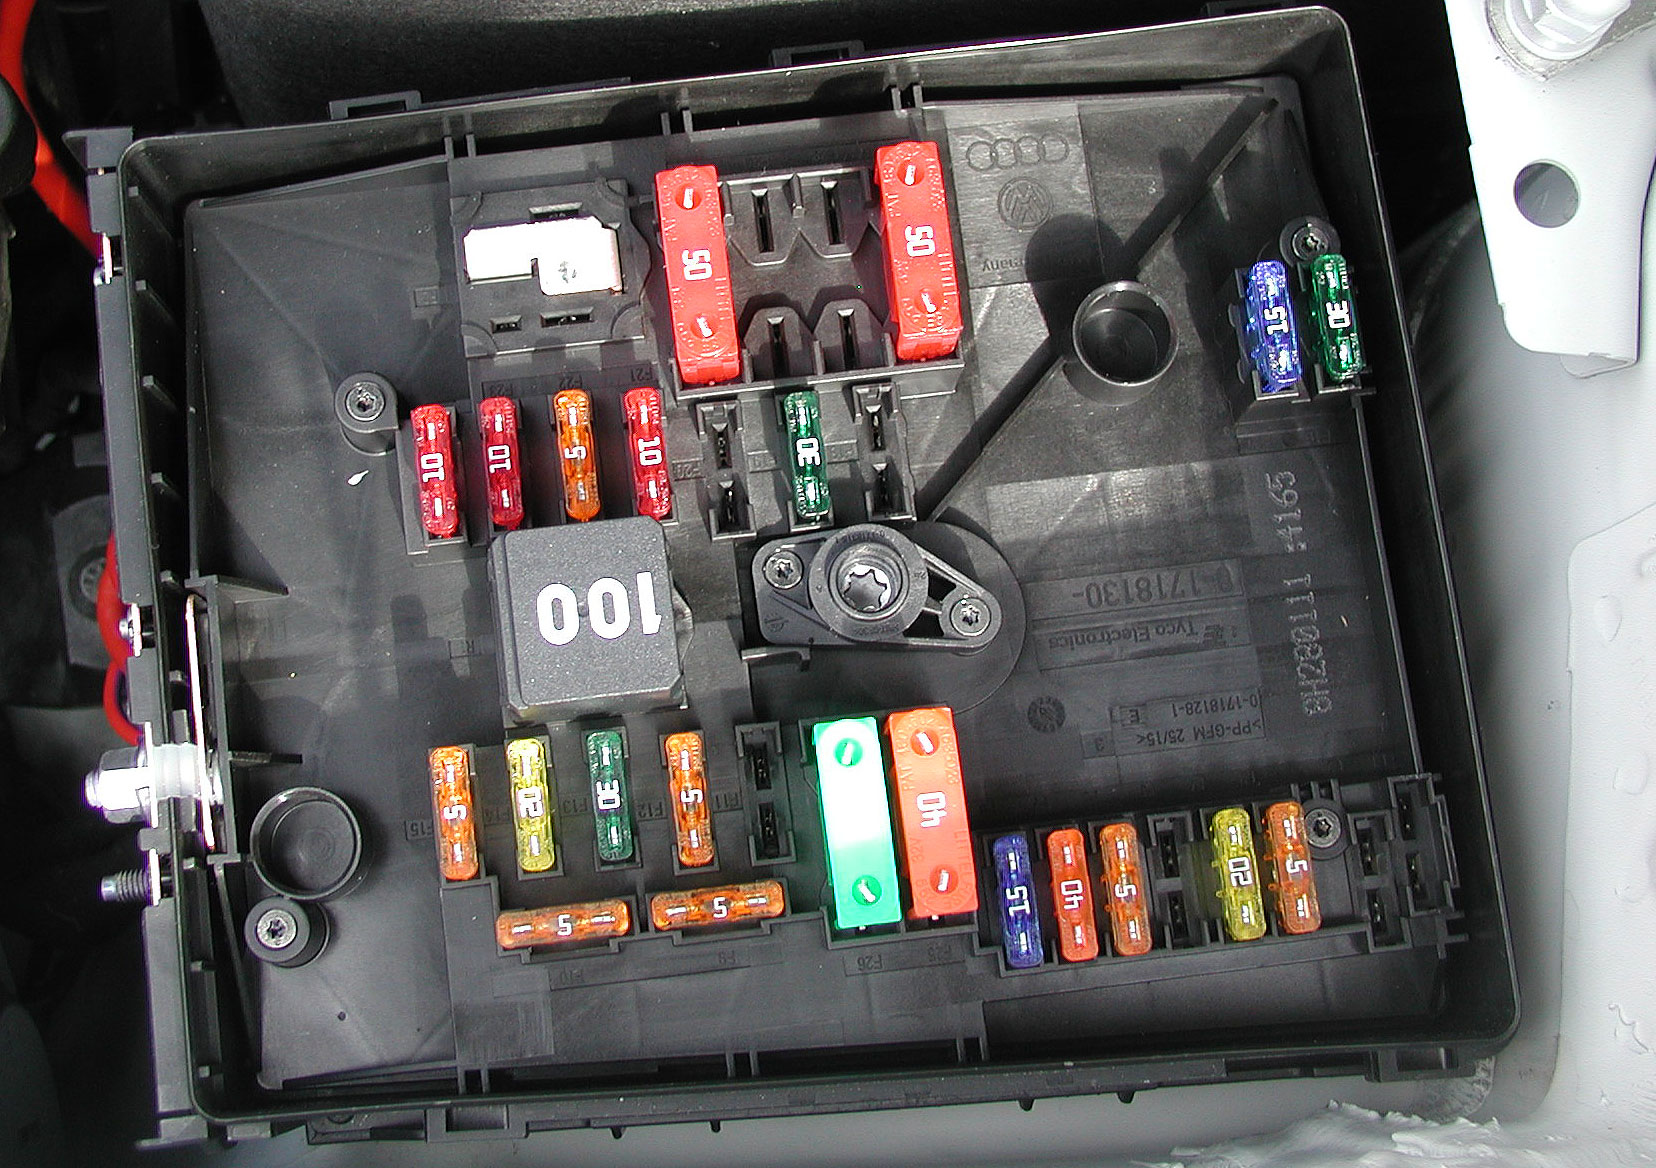 2015 Audi A3 Fuse Box Diagram Trusted Wiring 96 A4 2012 Vw Golf Circuit U2022 2004 Driver Window